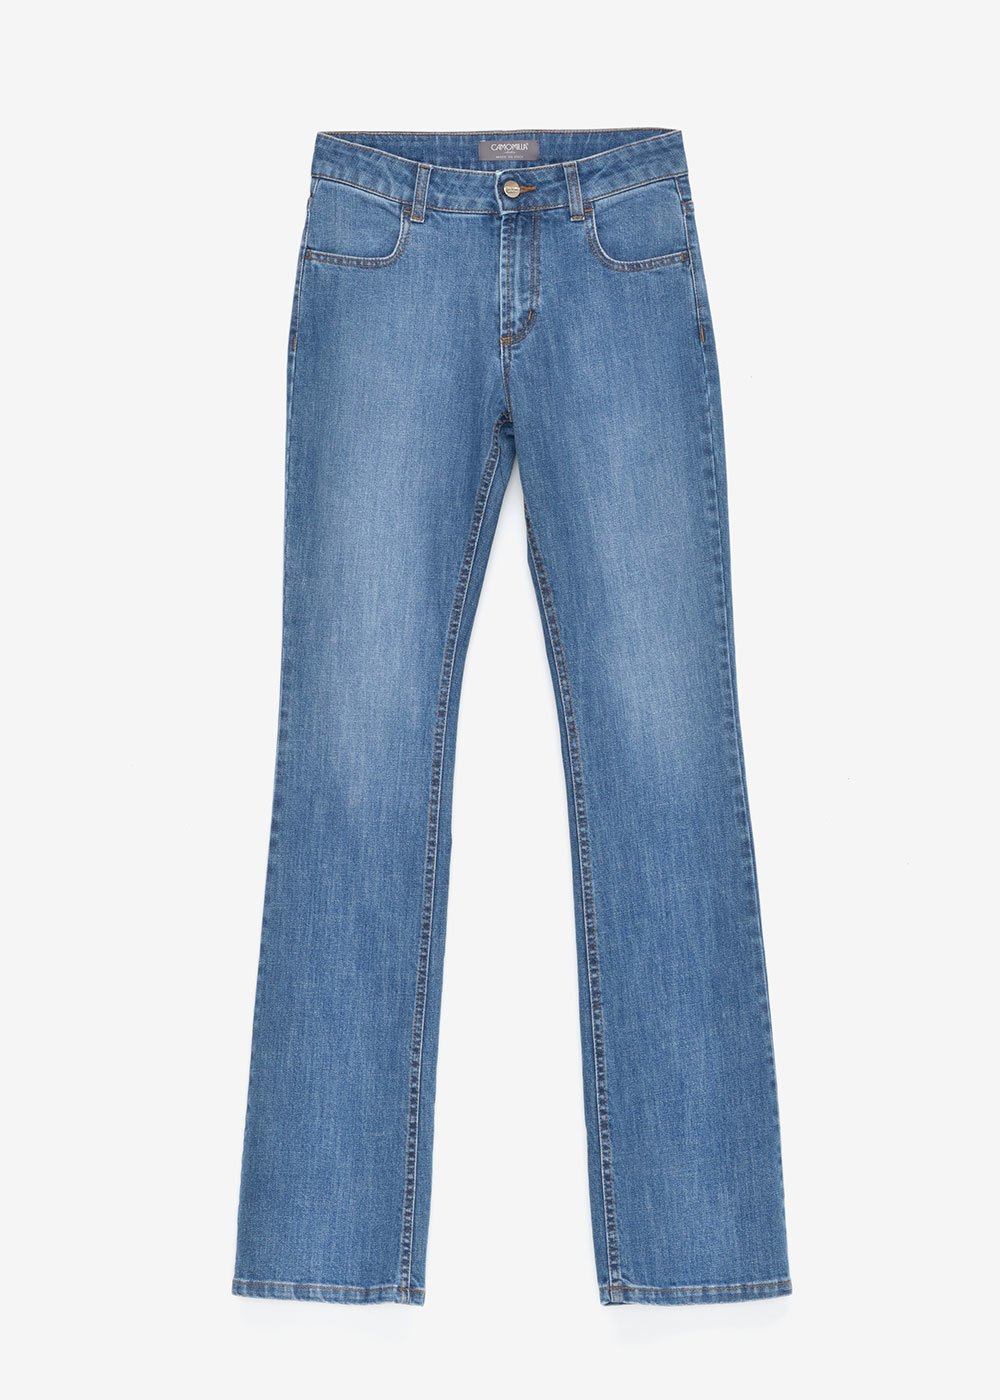 Cindy flared denims - Denim - Woman